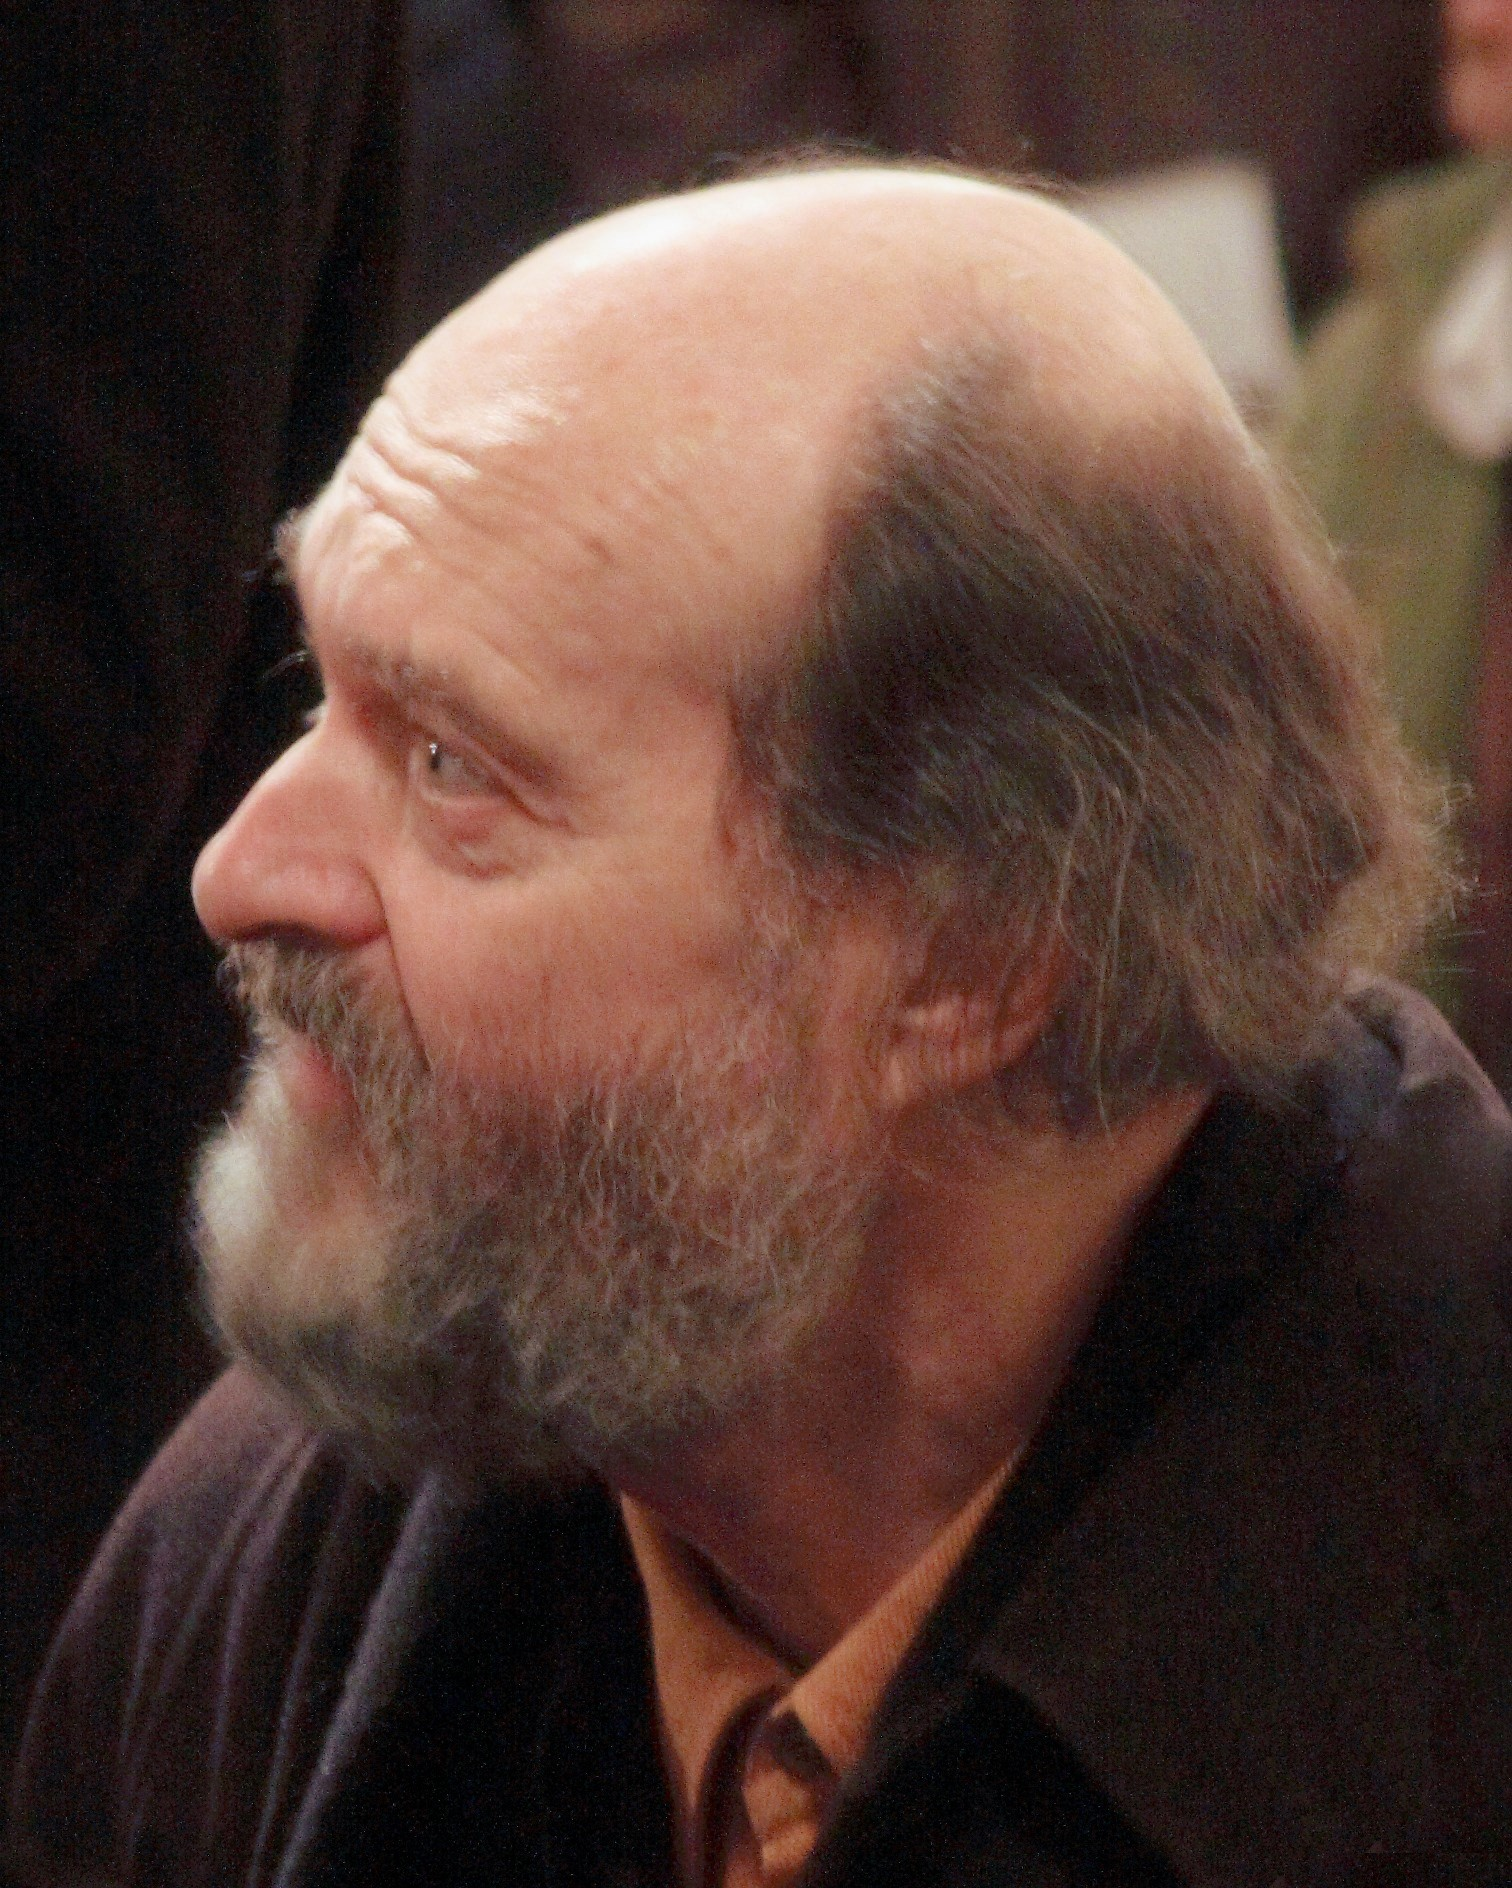 Photo Arvo Pärt via Opendata BNF